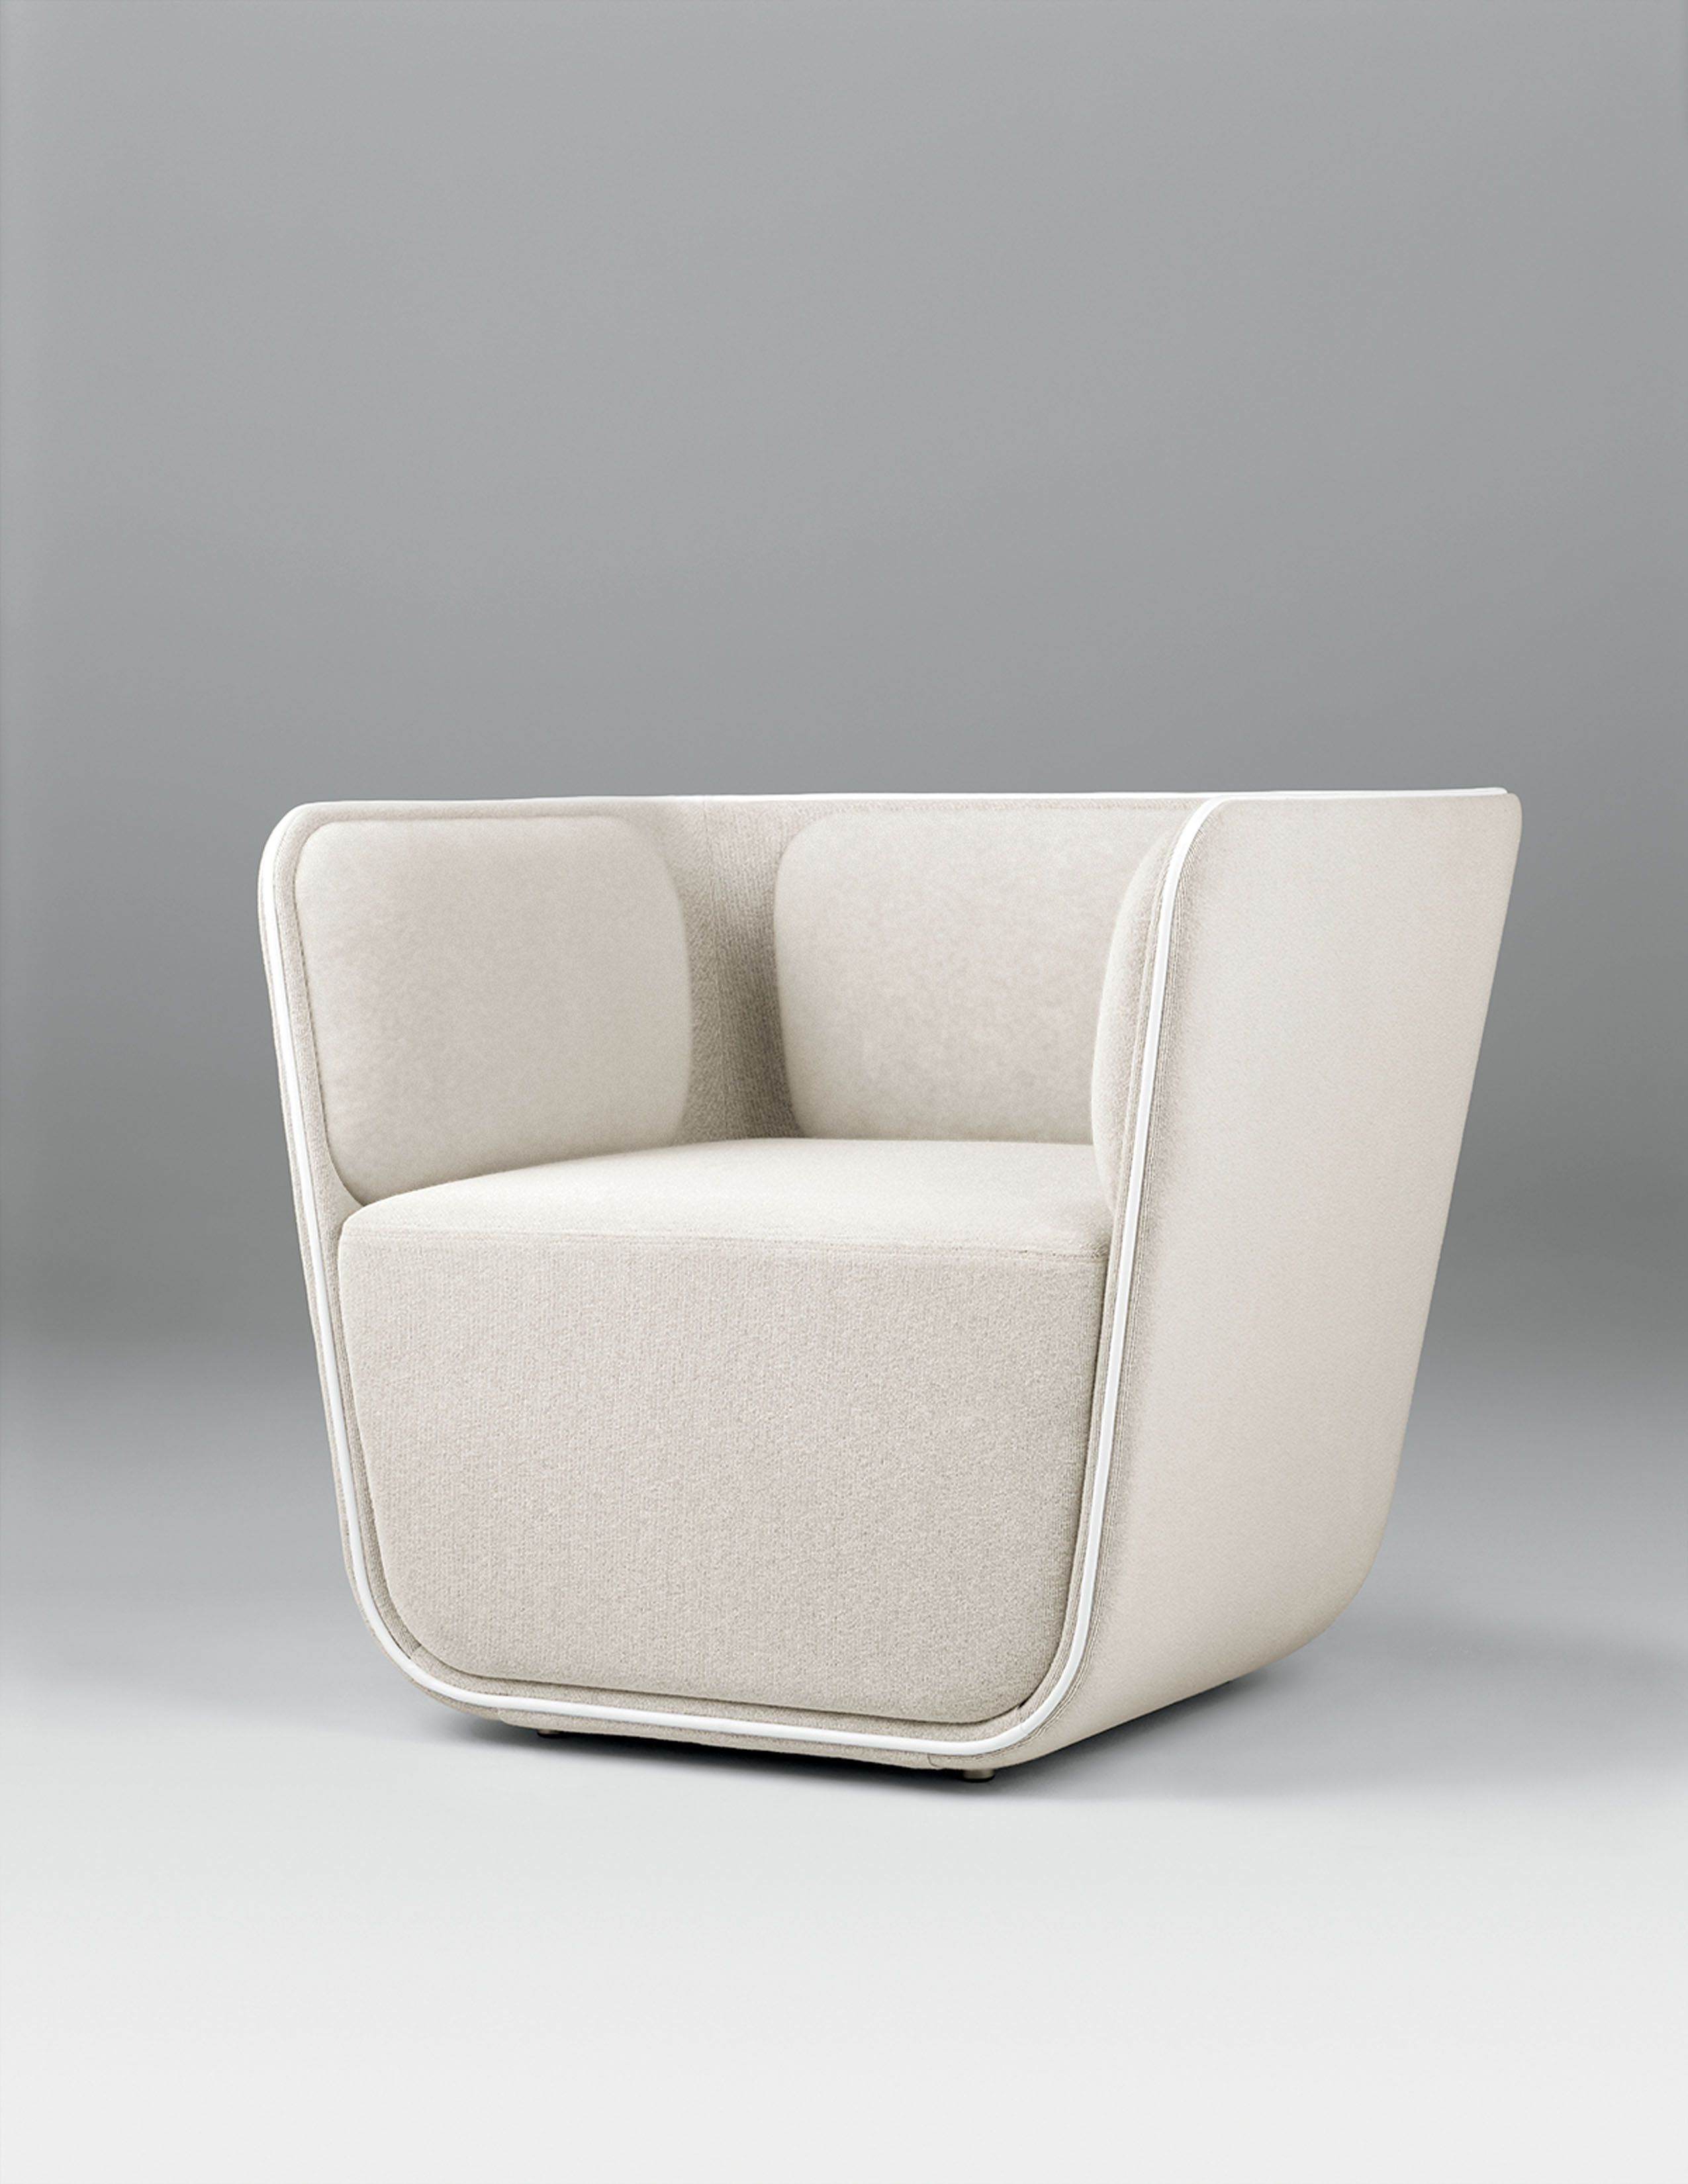 The Elle lounge chair, sofa, and modular seating share continuous lines that convey fluidity and motion, inspired by the energy of skateboarding. Planes and lines combine for a youthful elegance and a fresh style. The Elle Collection includes a lounge chair, 2-seat sofa, and modular seating including left, right, and armless center modules. All have fixed multi-density polyurethane foam cushions and nylon glides.